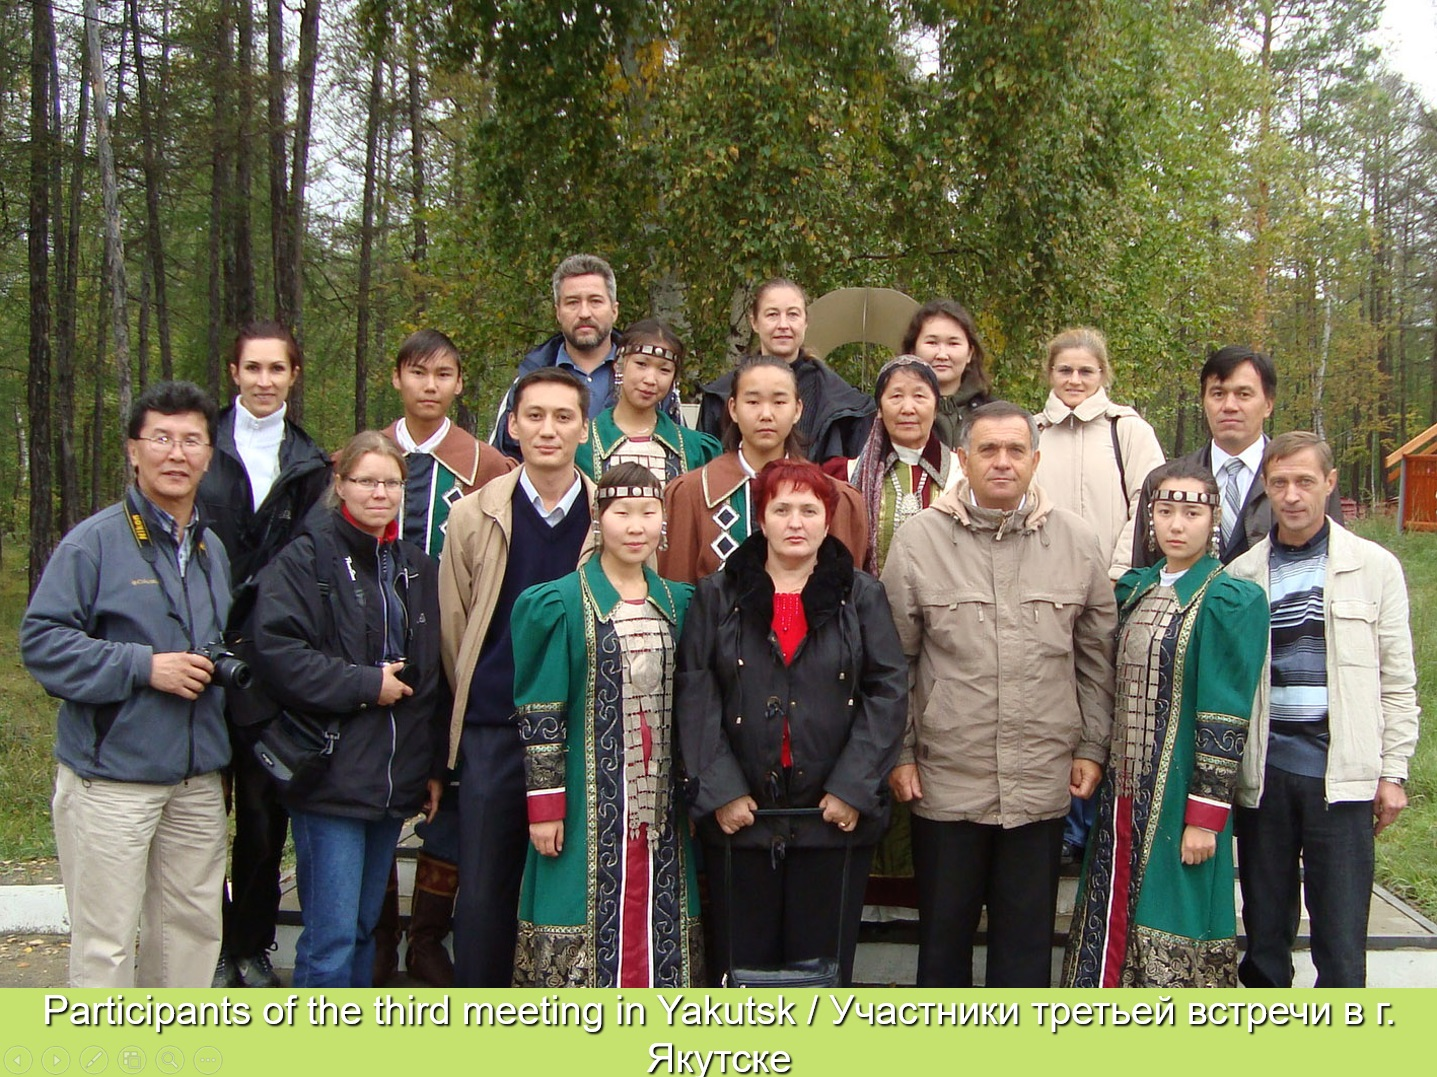 Participants of the third meeting in Yakutsk